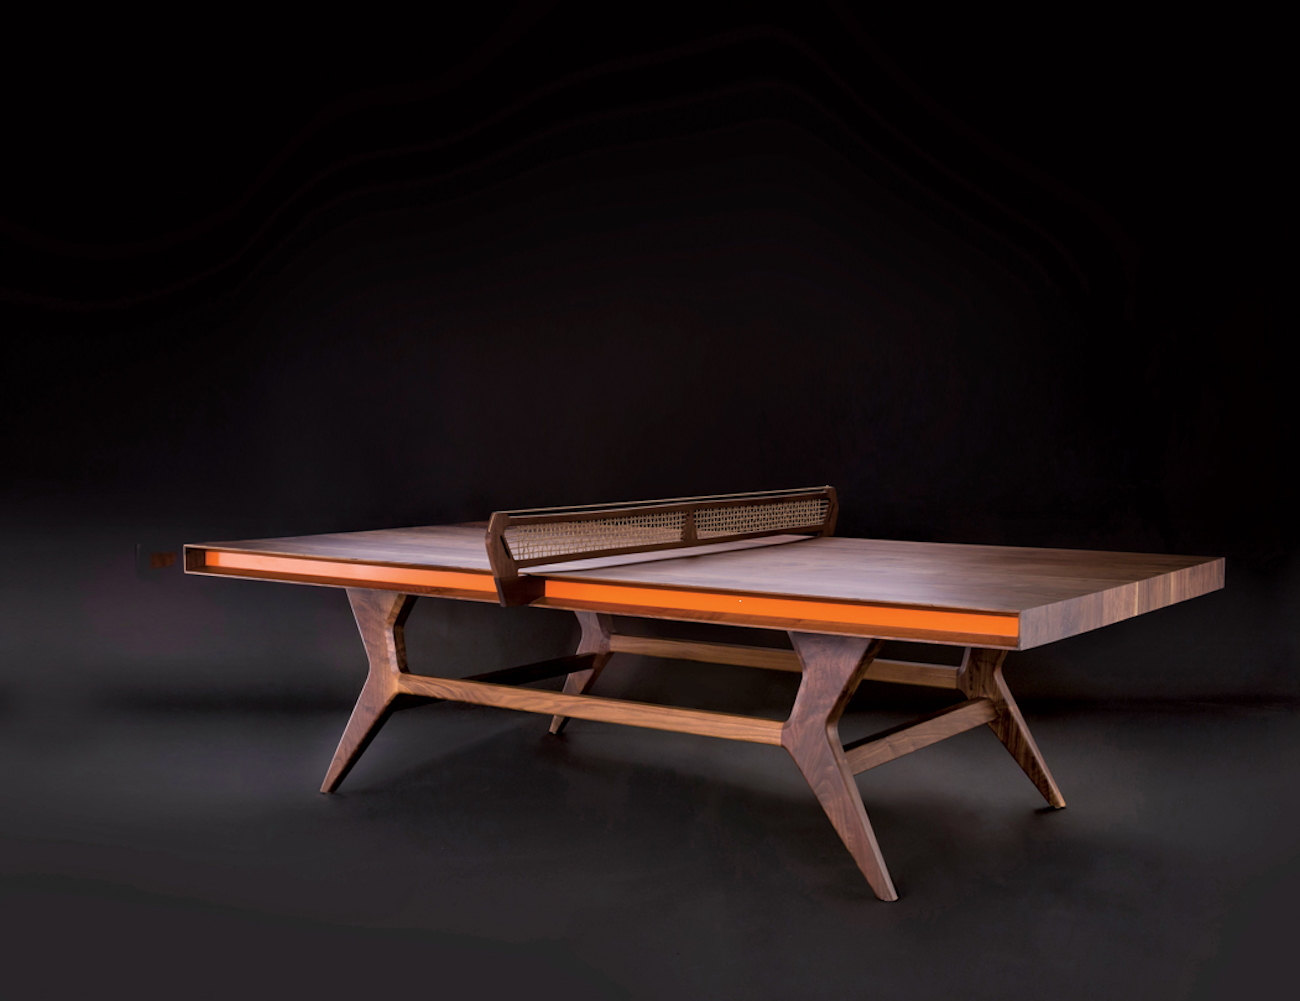 Jory Brigham Mackenrow Wooden Table Tennis